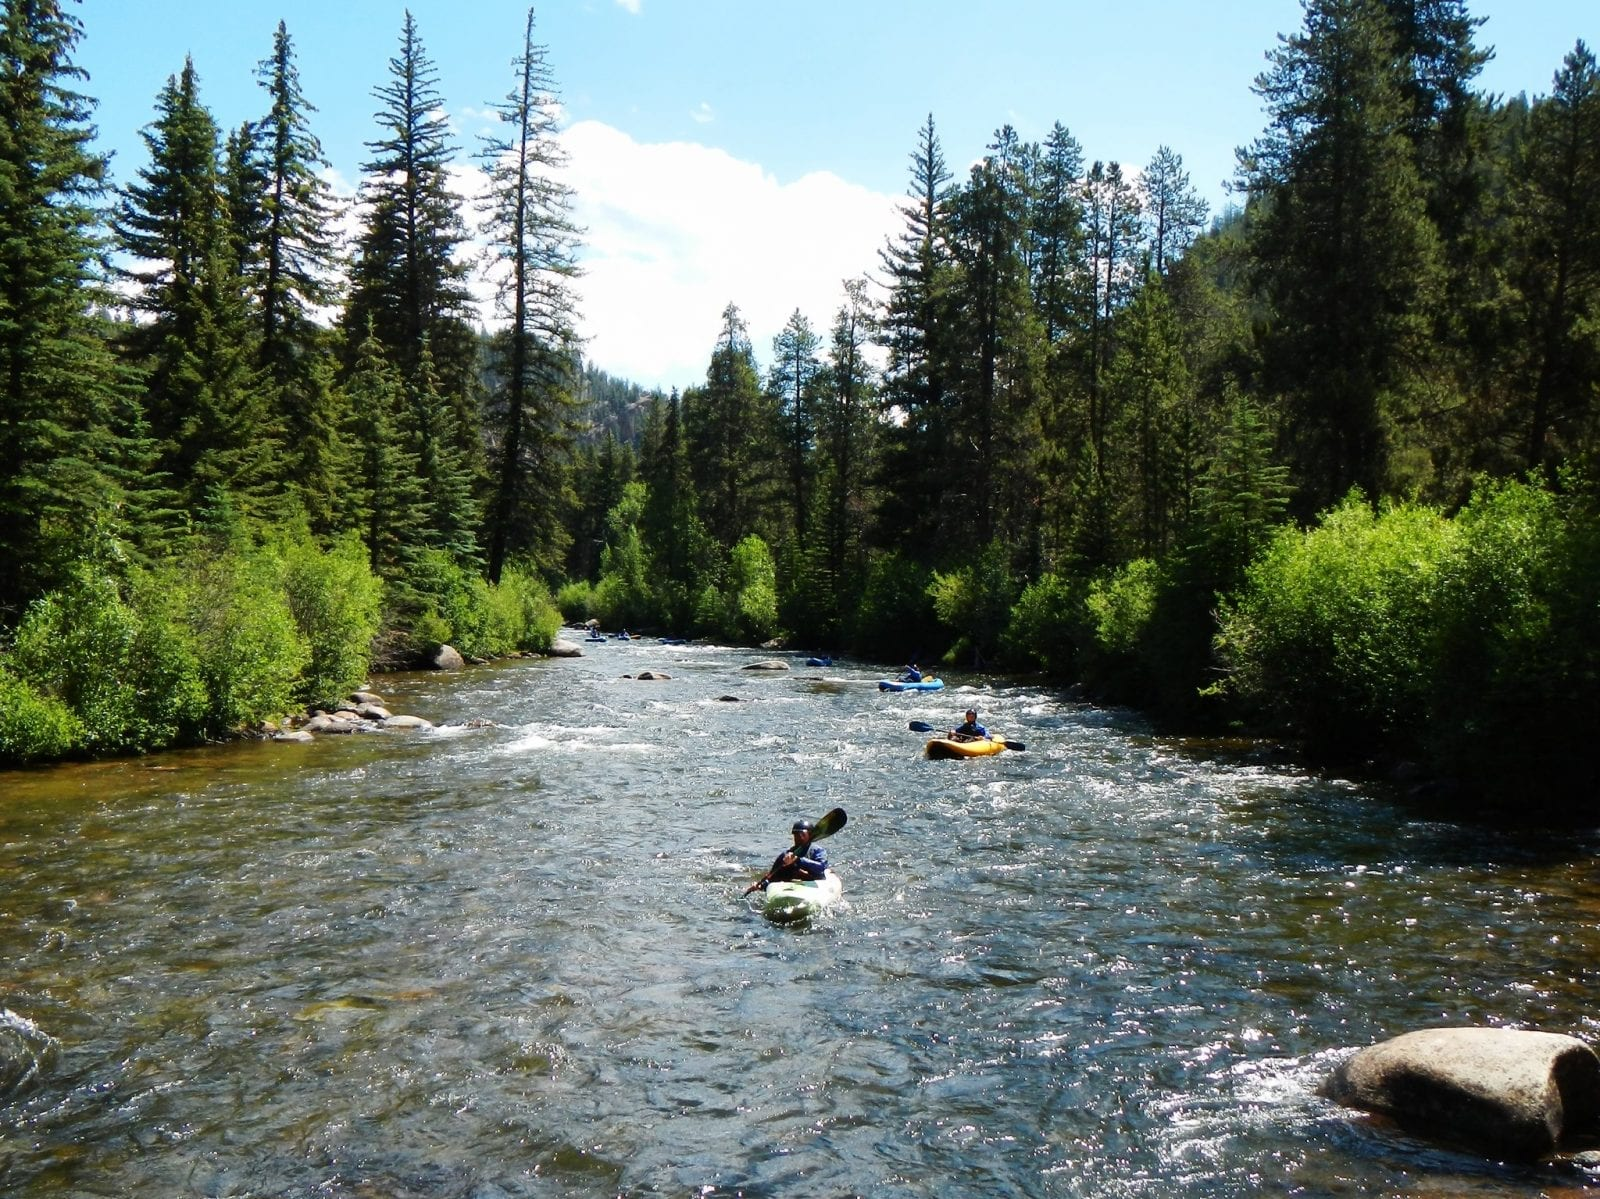 Image of kayakers on the Taylor River in Colorado